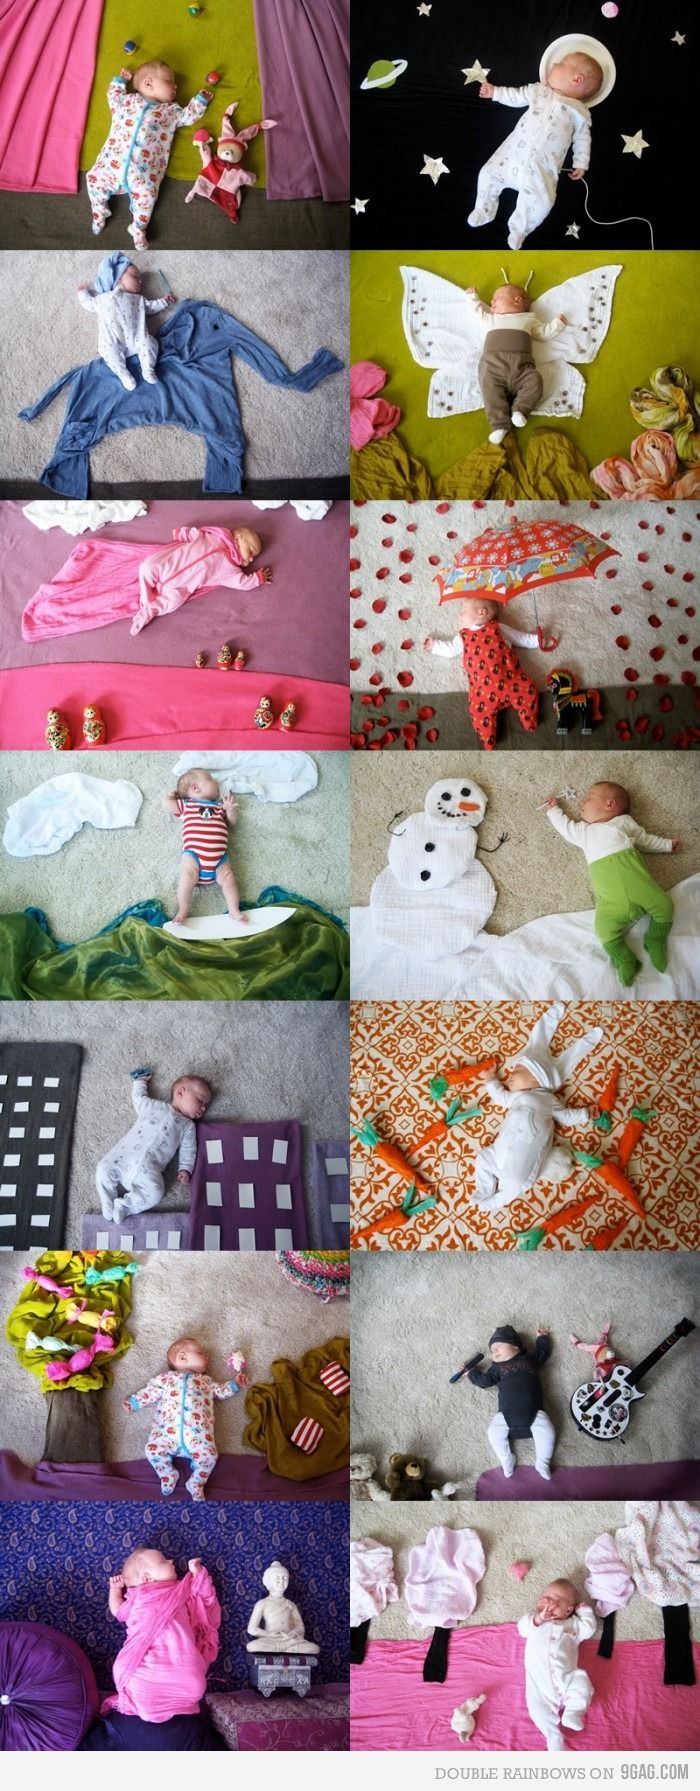 Oh the things you can do with sleeping babies.. Haha. http://www.f0nt.com/forum/index.php?topic=18884.1470